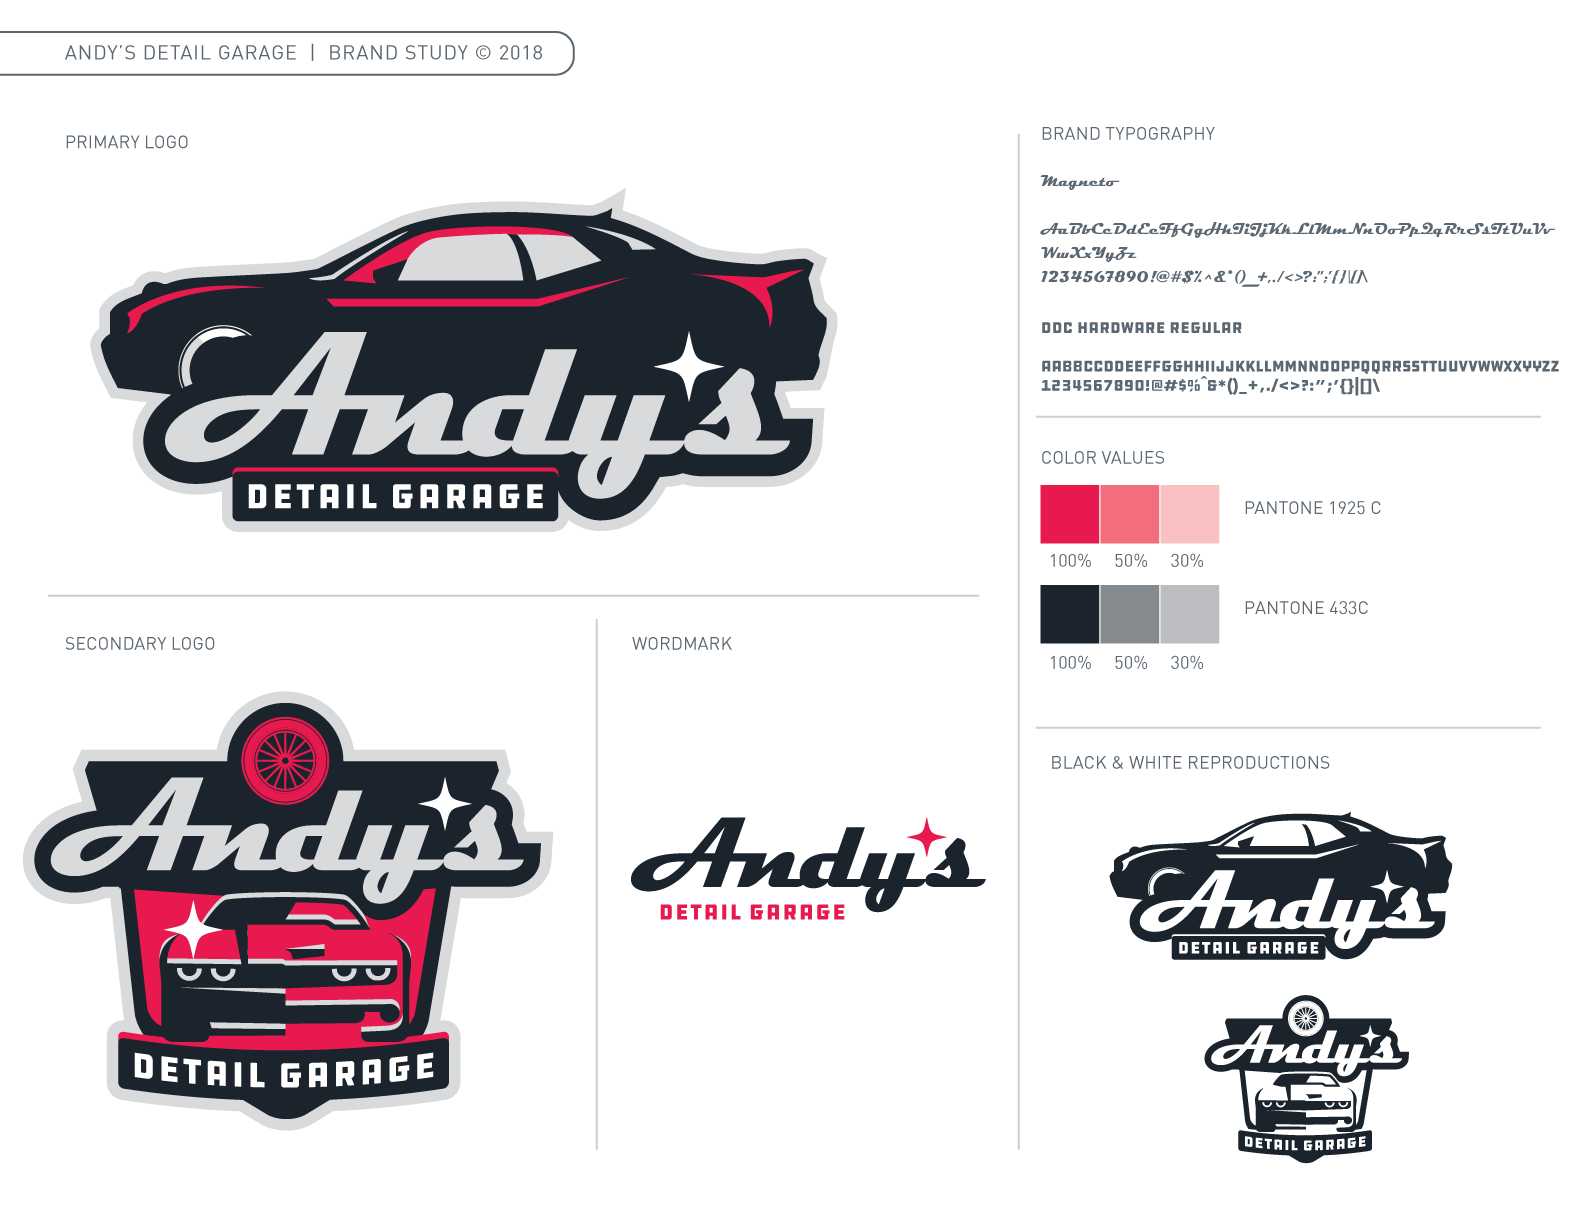 Andy's Detail Garage Brand Guide